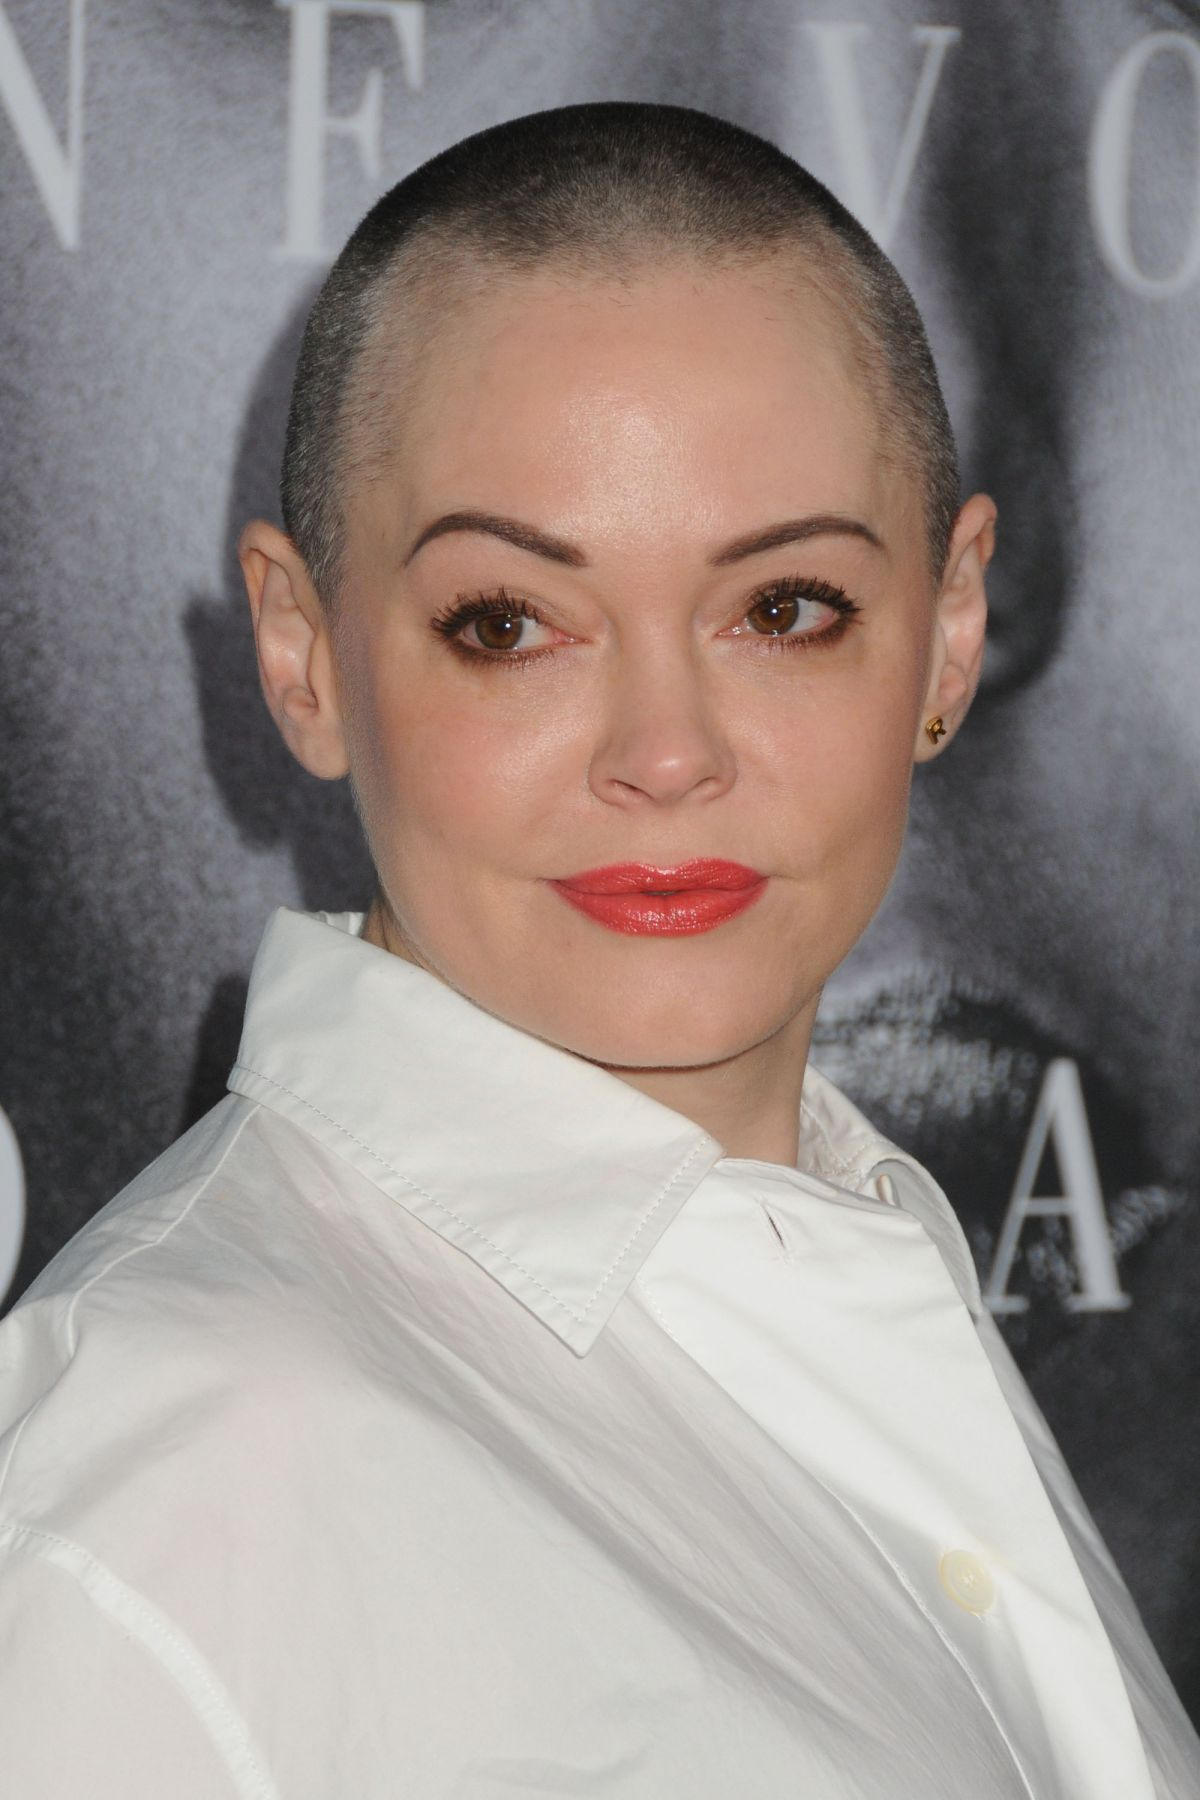 ROSE MCGOWAN at 'Confirmation' Premiere in Hollywood 04/01 ...